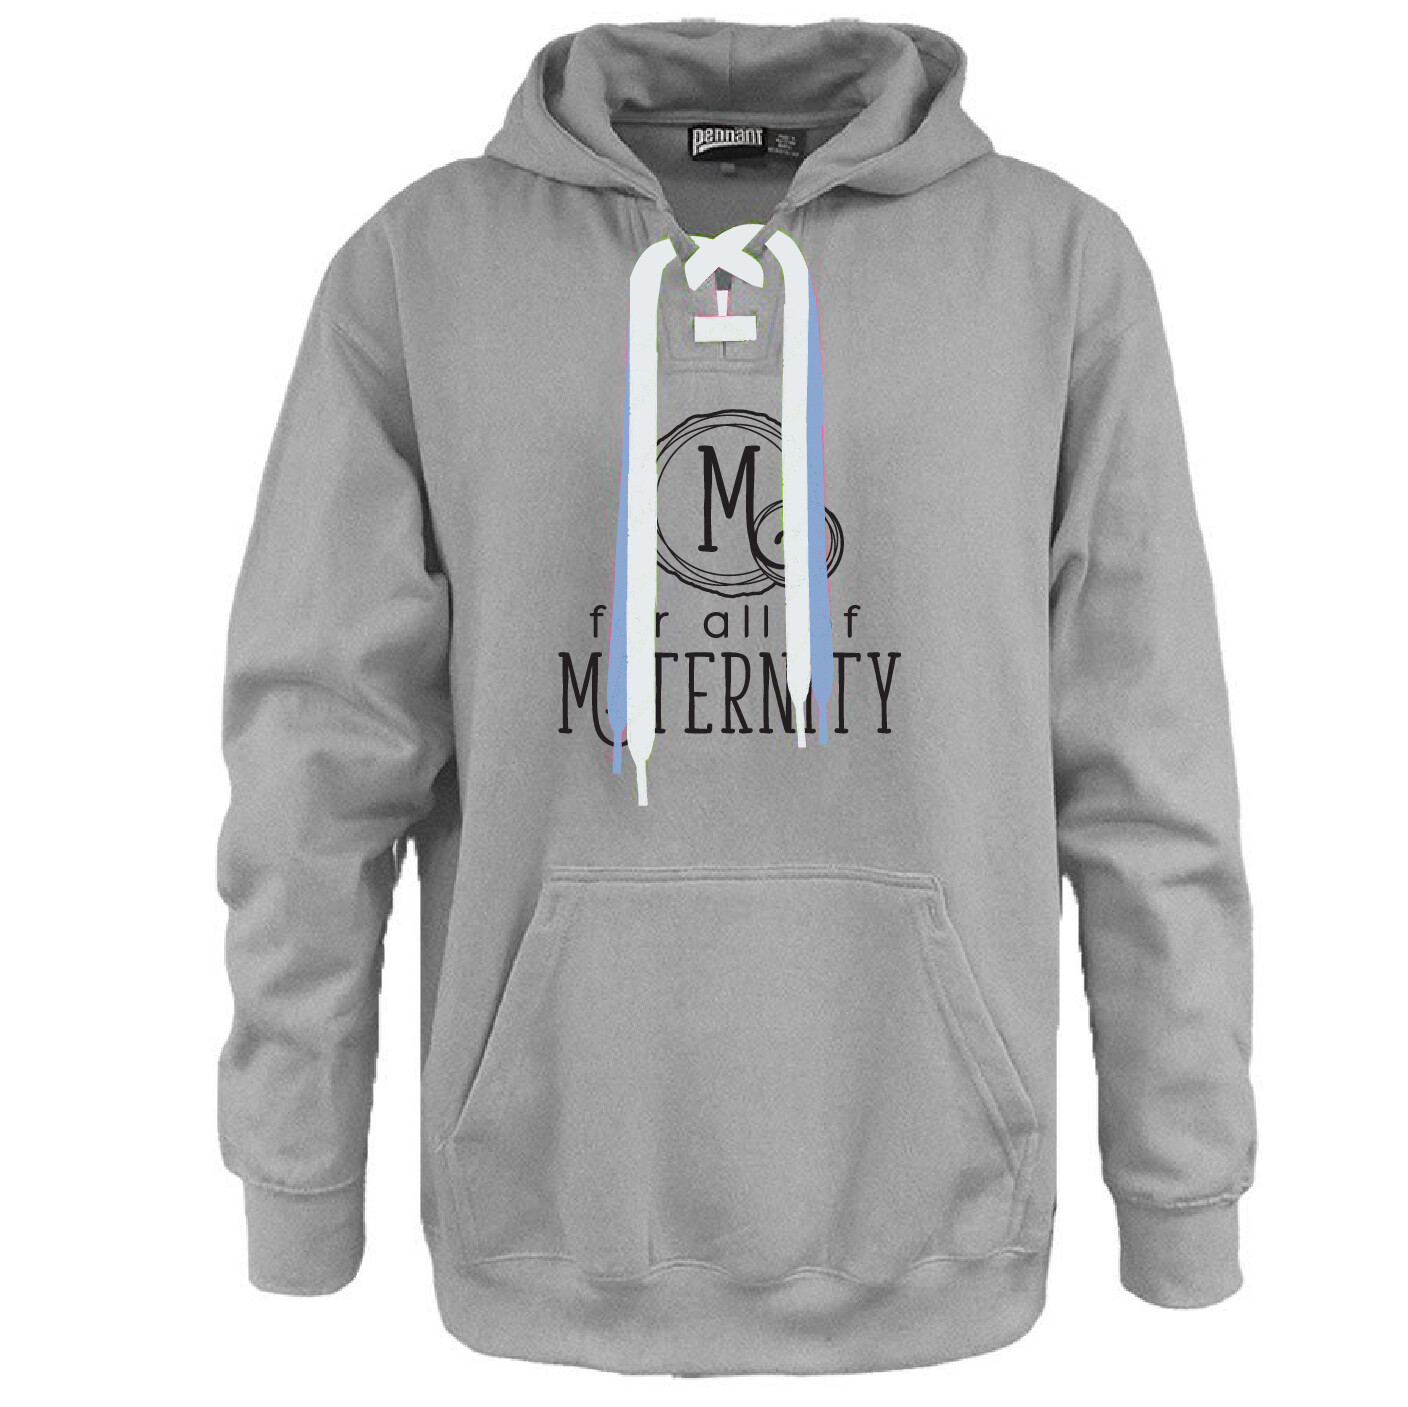 For All Of Maternity - Here For Good Minnesota Hockey Lace Hoodie #HEREFORGOODMN